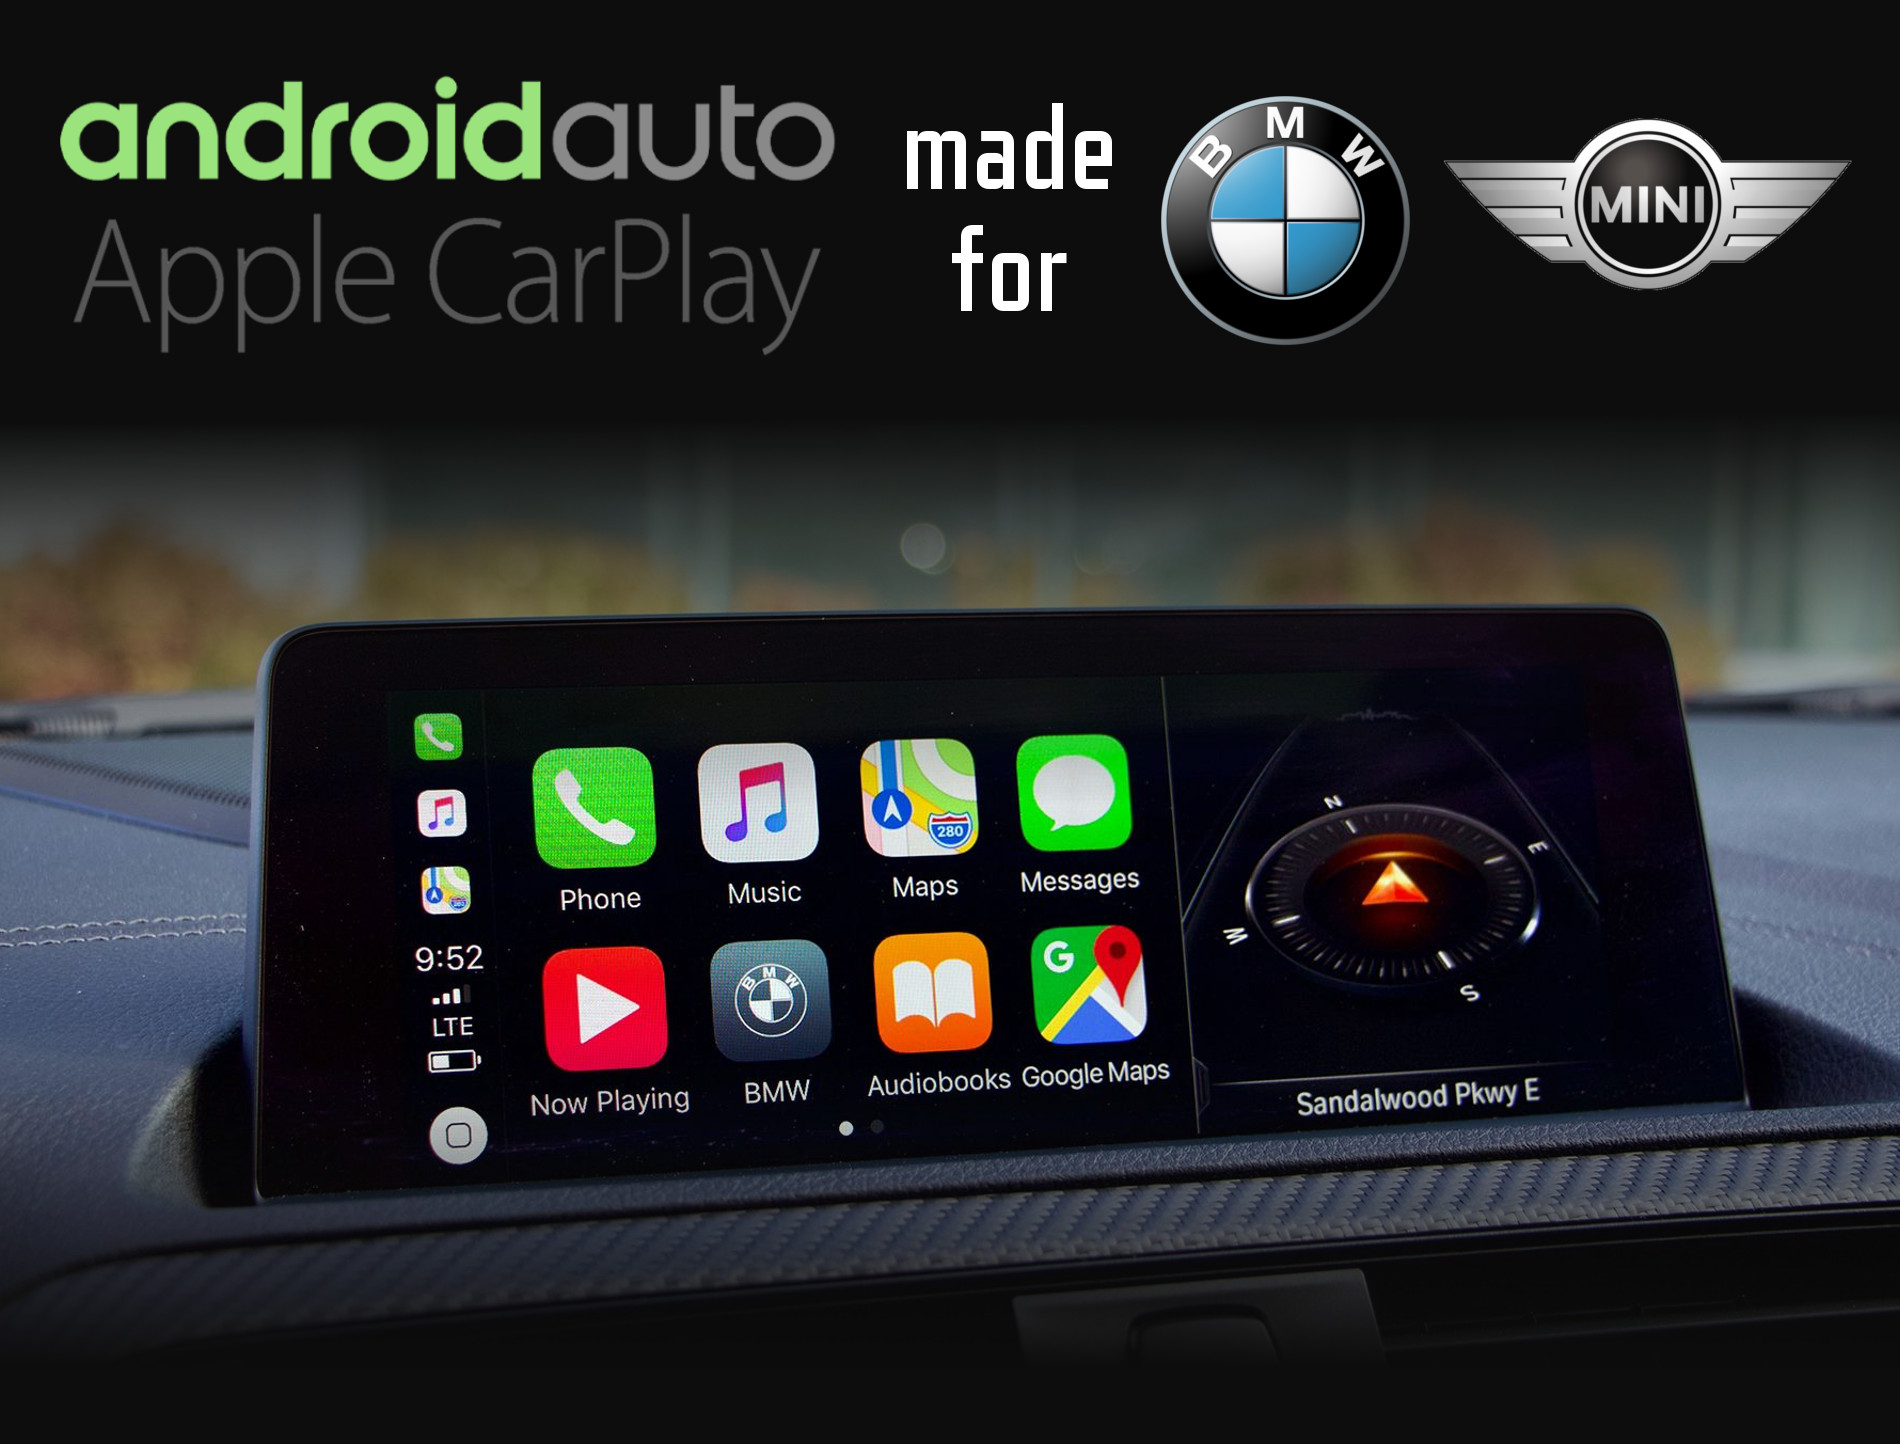 Aftermarket Apple Carplay, Android Auto integration for BMW factory radio screens for 1 Series, 2 Series, 3 Series, 4 Series, 5 Series, 6 Series, 7 Series, i3, i8, X1, X2, X3, X4, X5, X6, X7, Z4